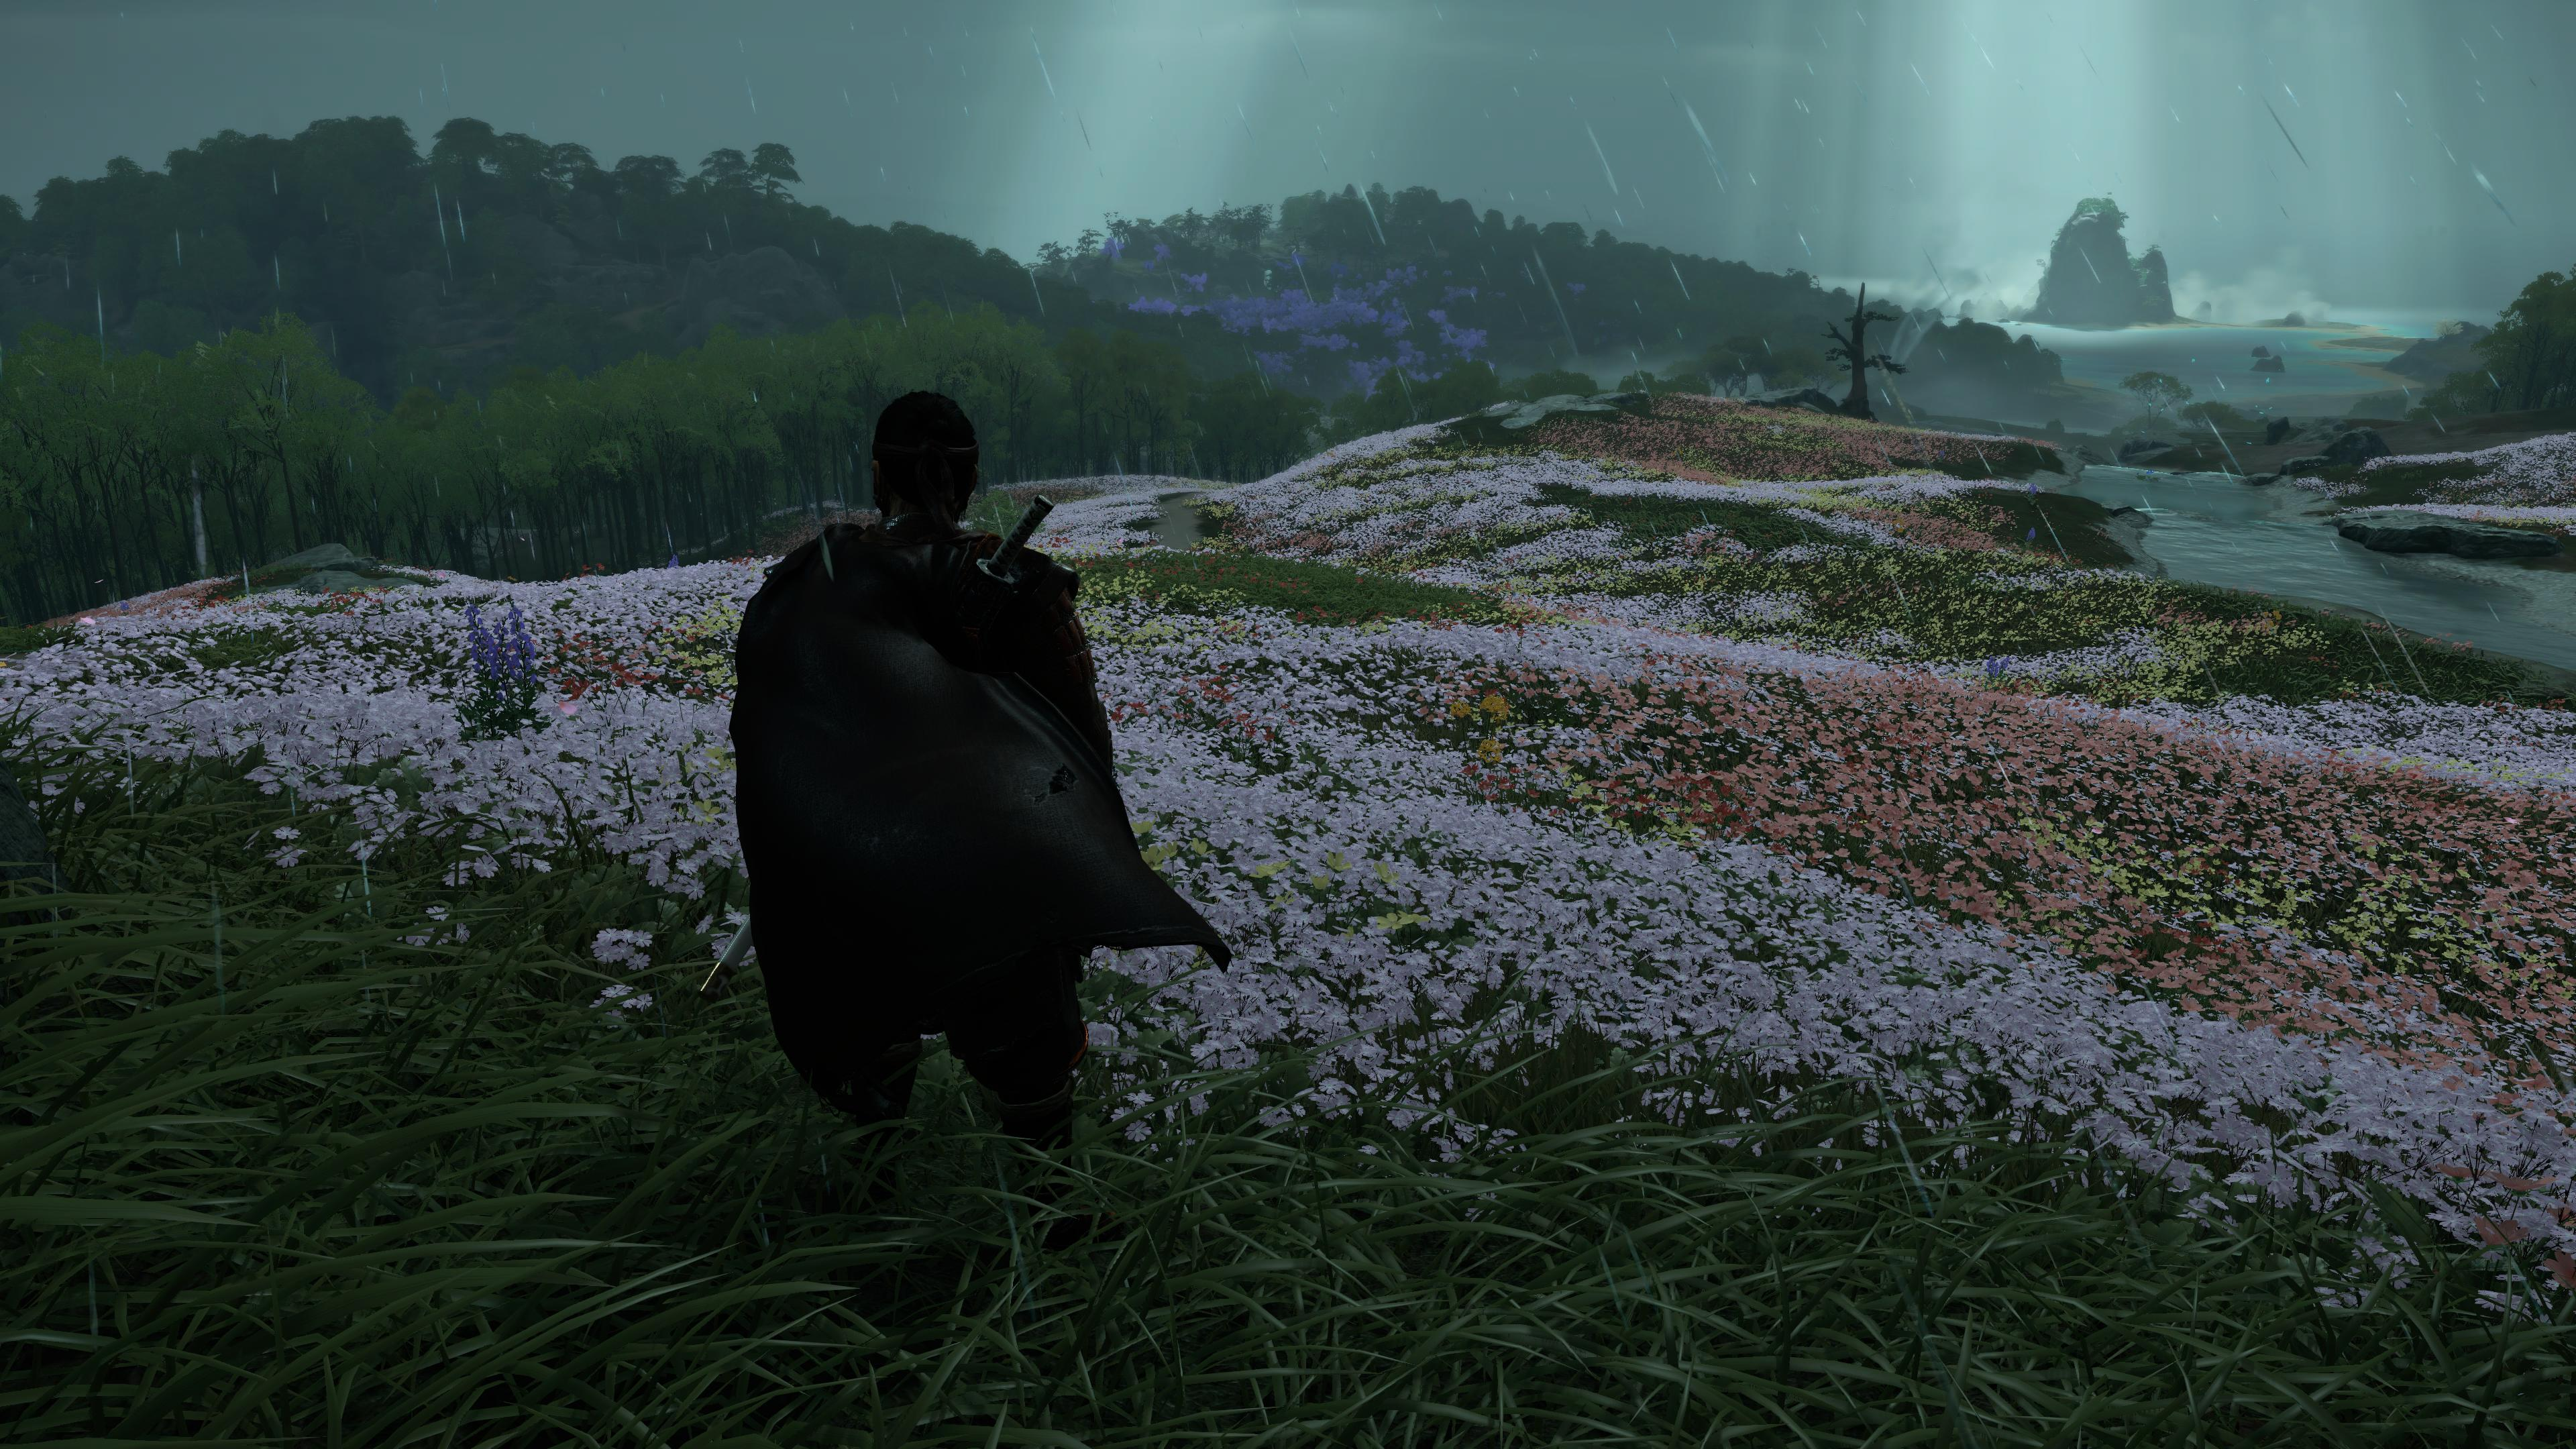 An absolutely massive flower field stretches to the horizon.